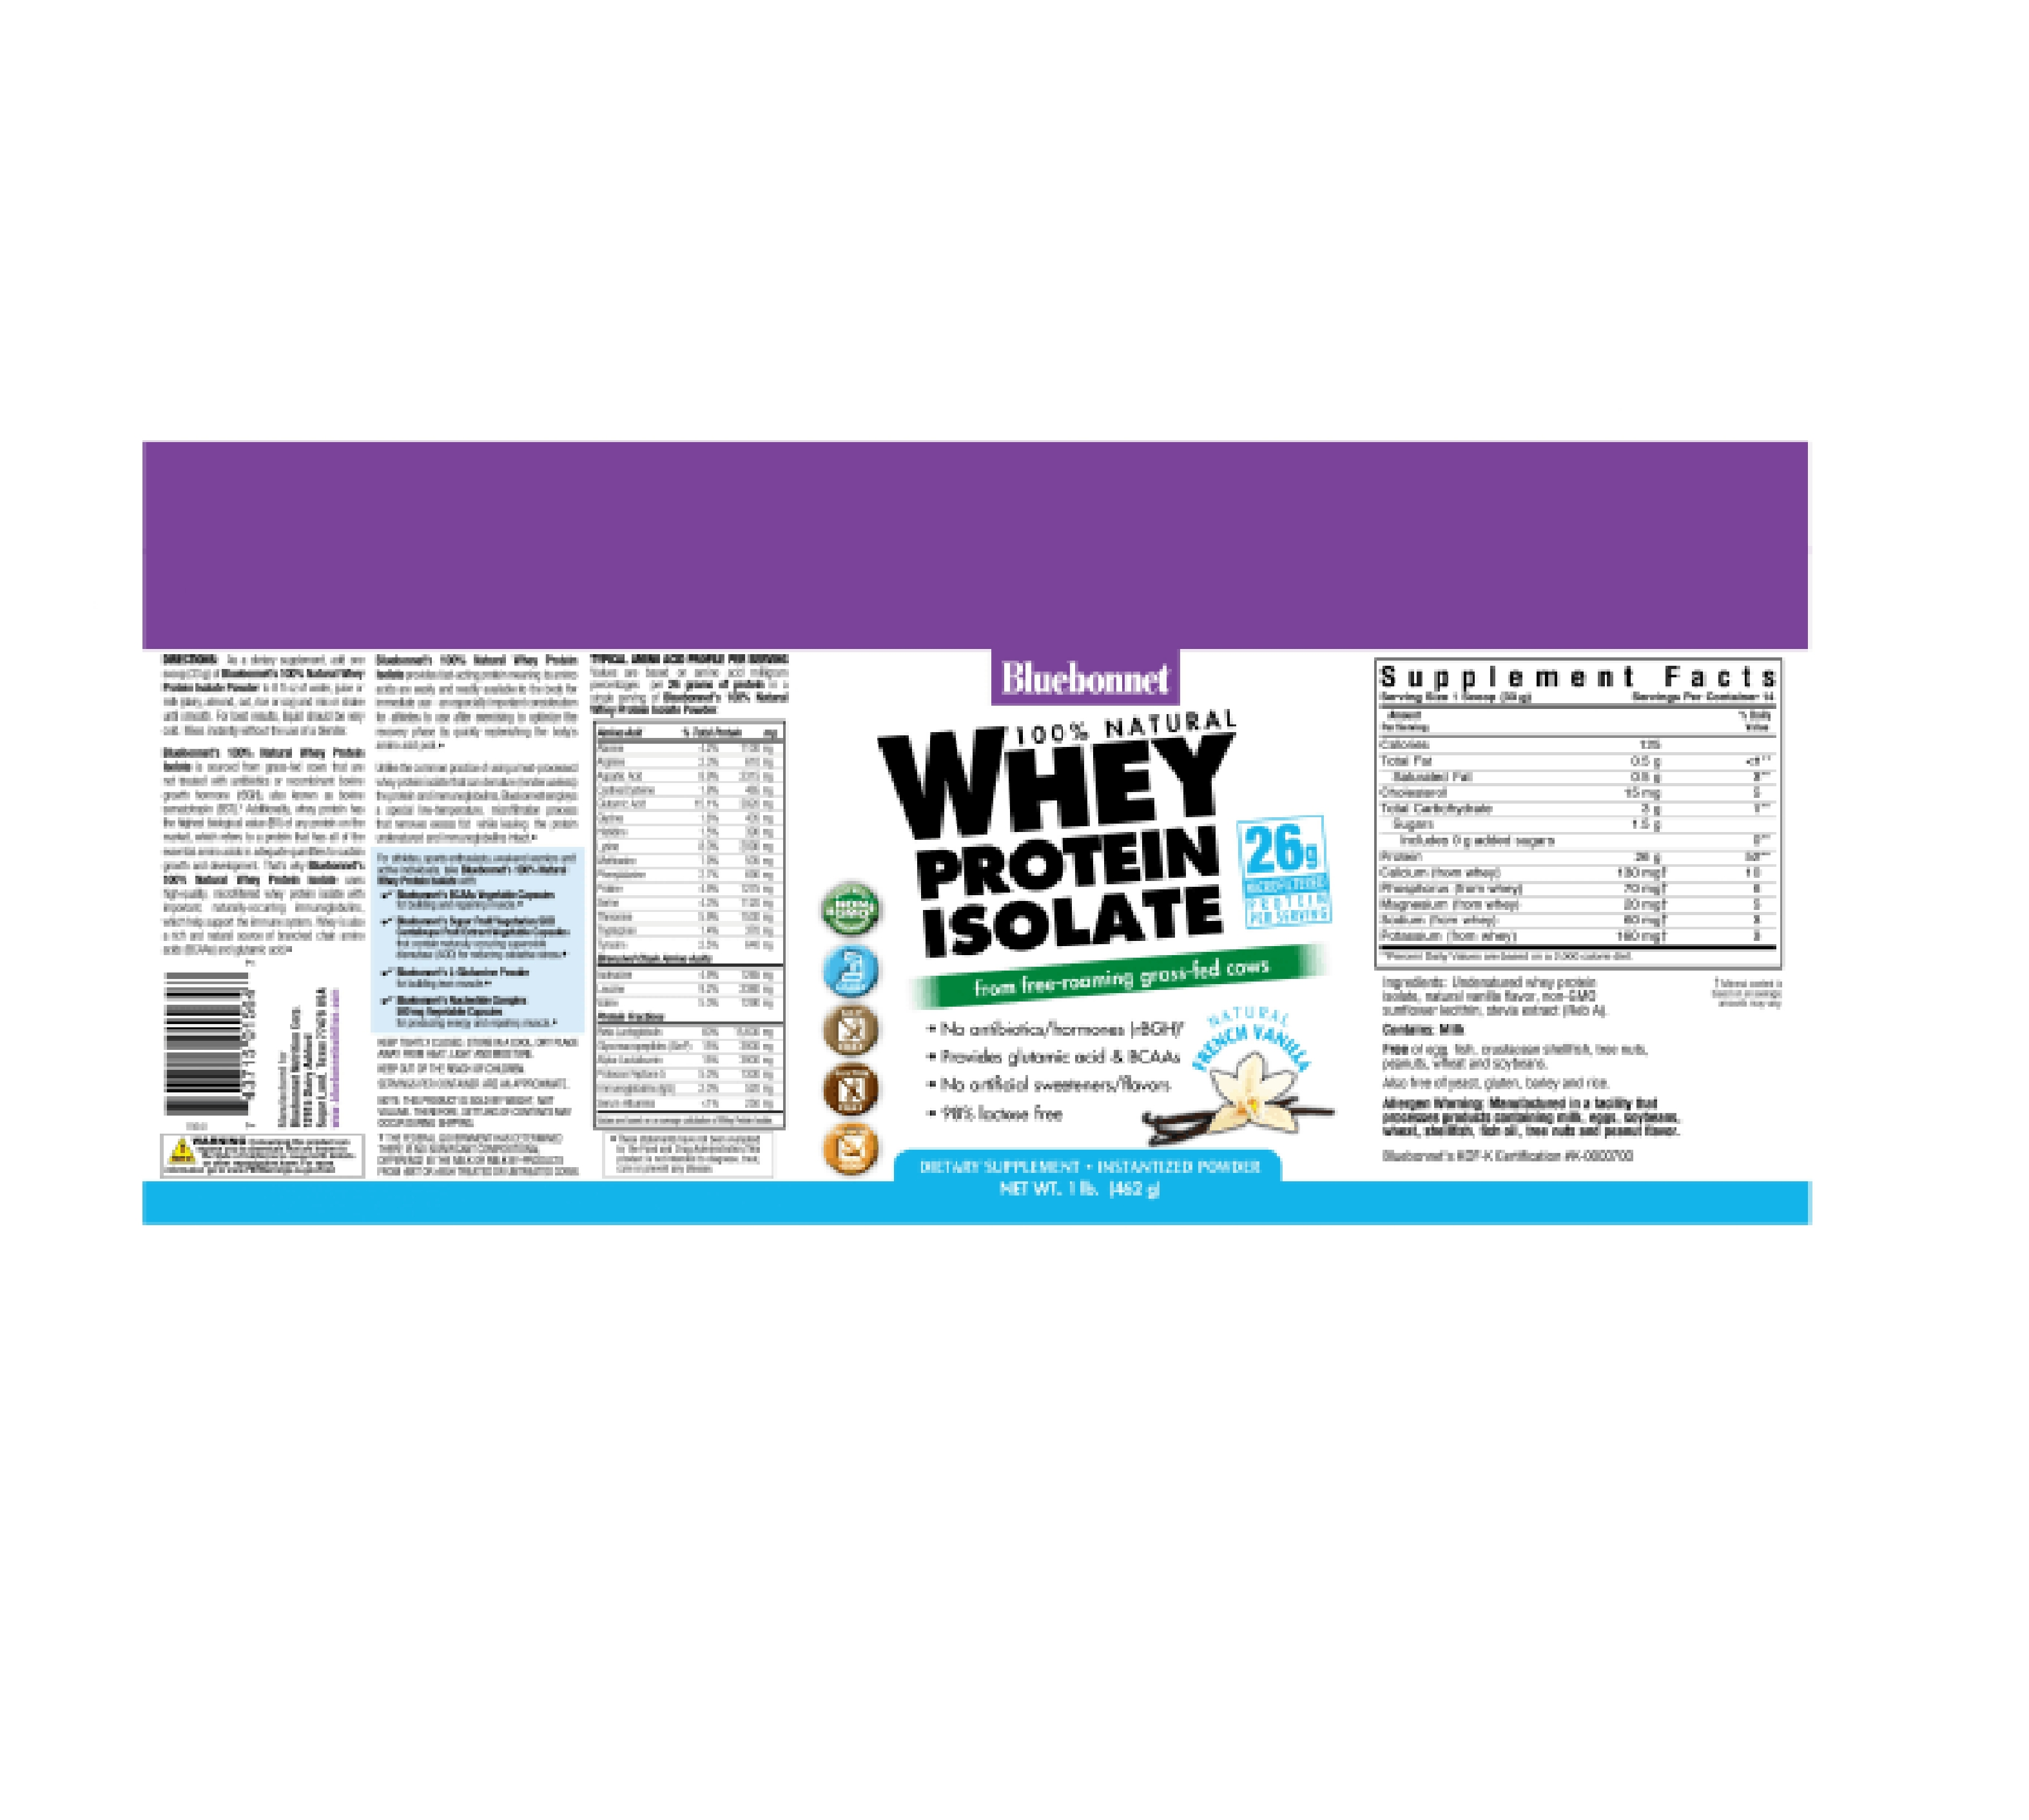 Pure Protein Natural Whey Protein Review